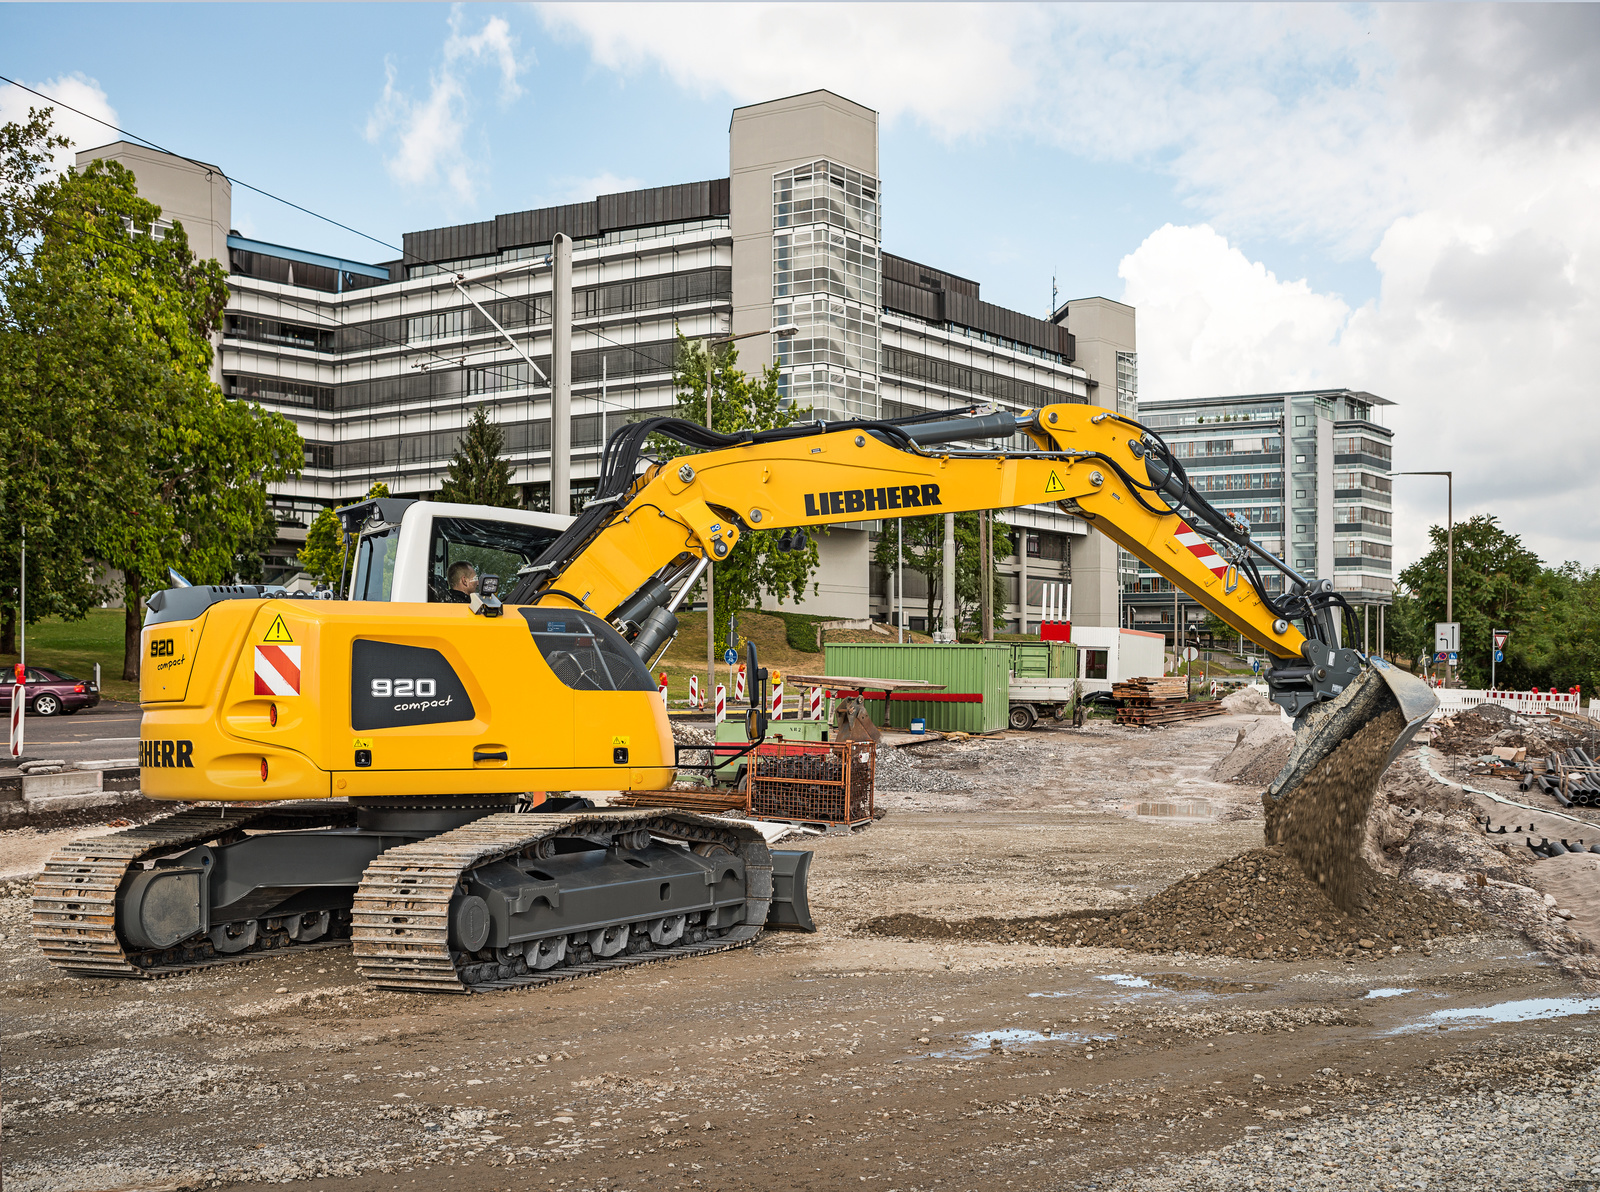 With a wide range of options and undercarriages, the Liebherr R 920 Compact swing crawler excavator excels at a broad range of applications.